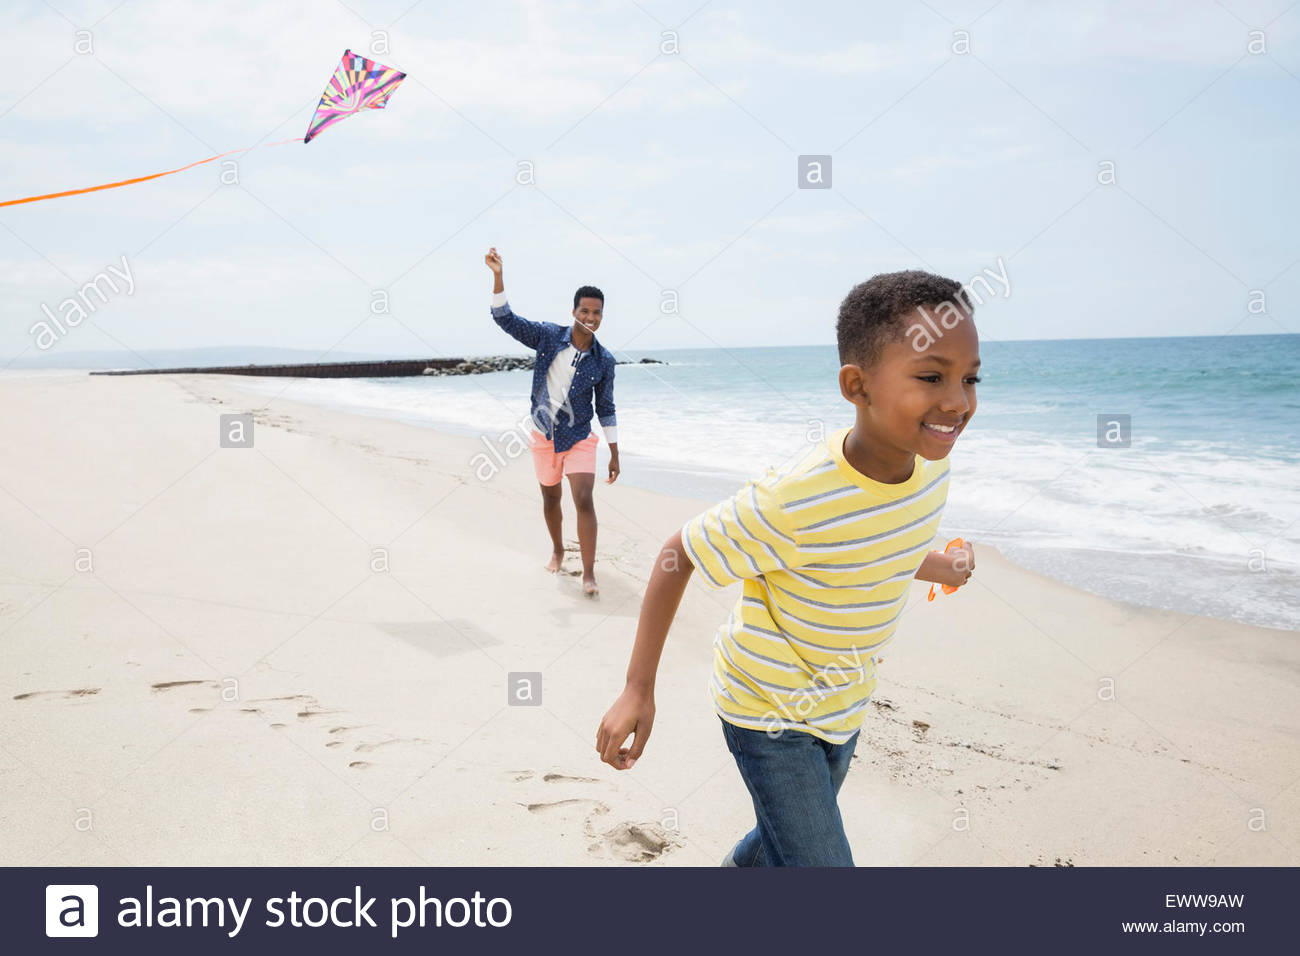 Father and son flying kite on beach - Stock Image